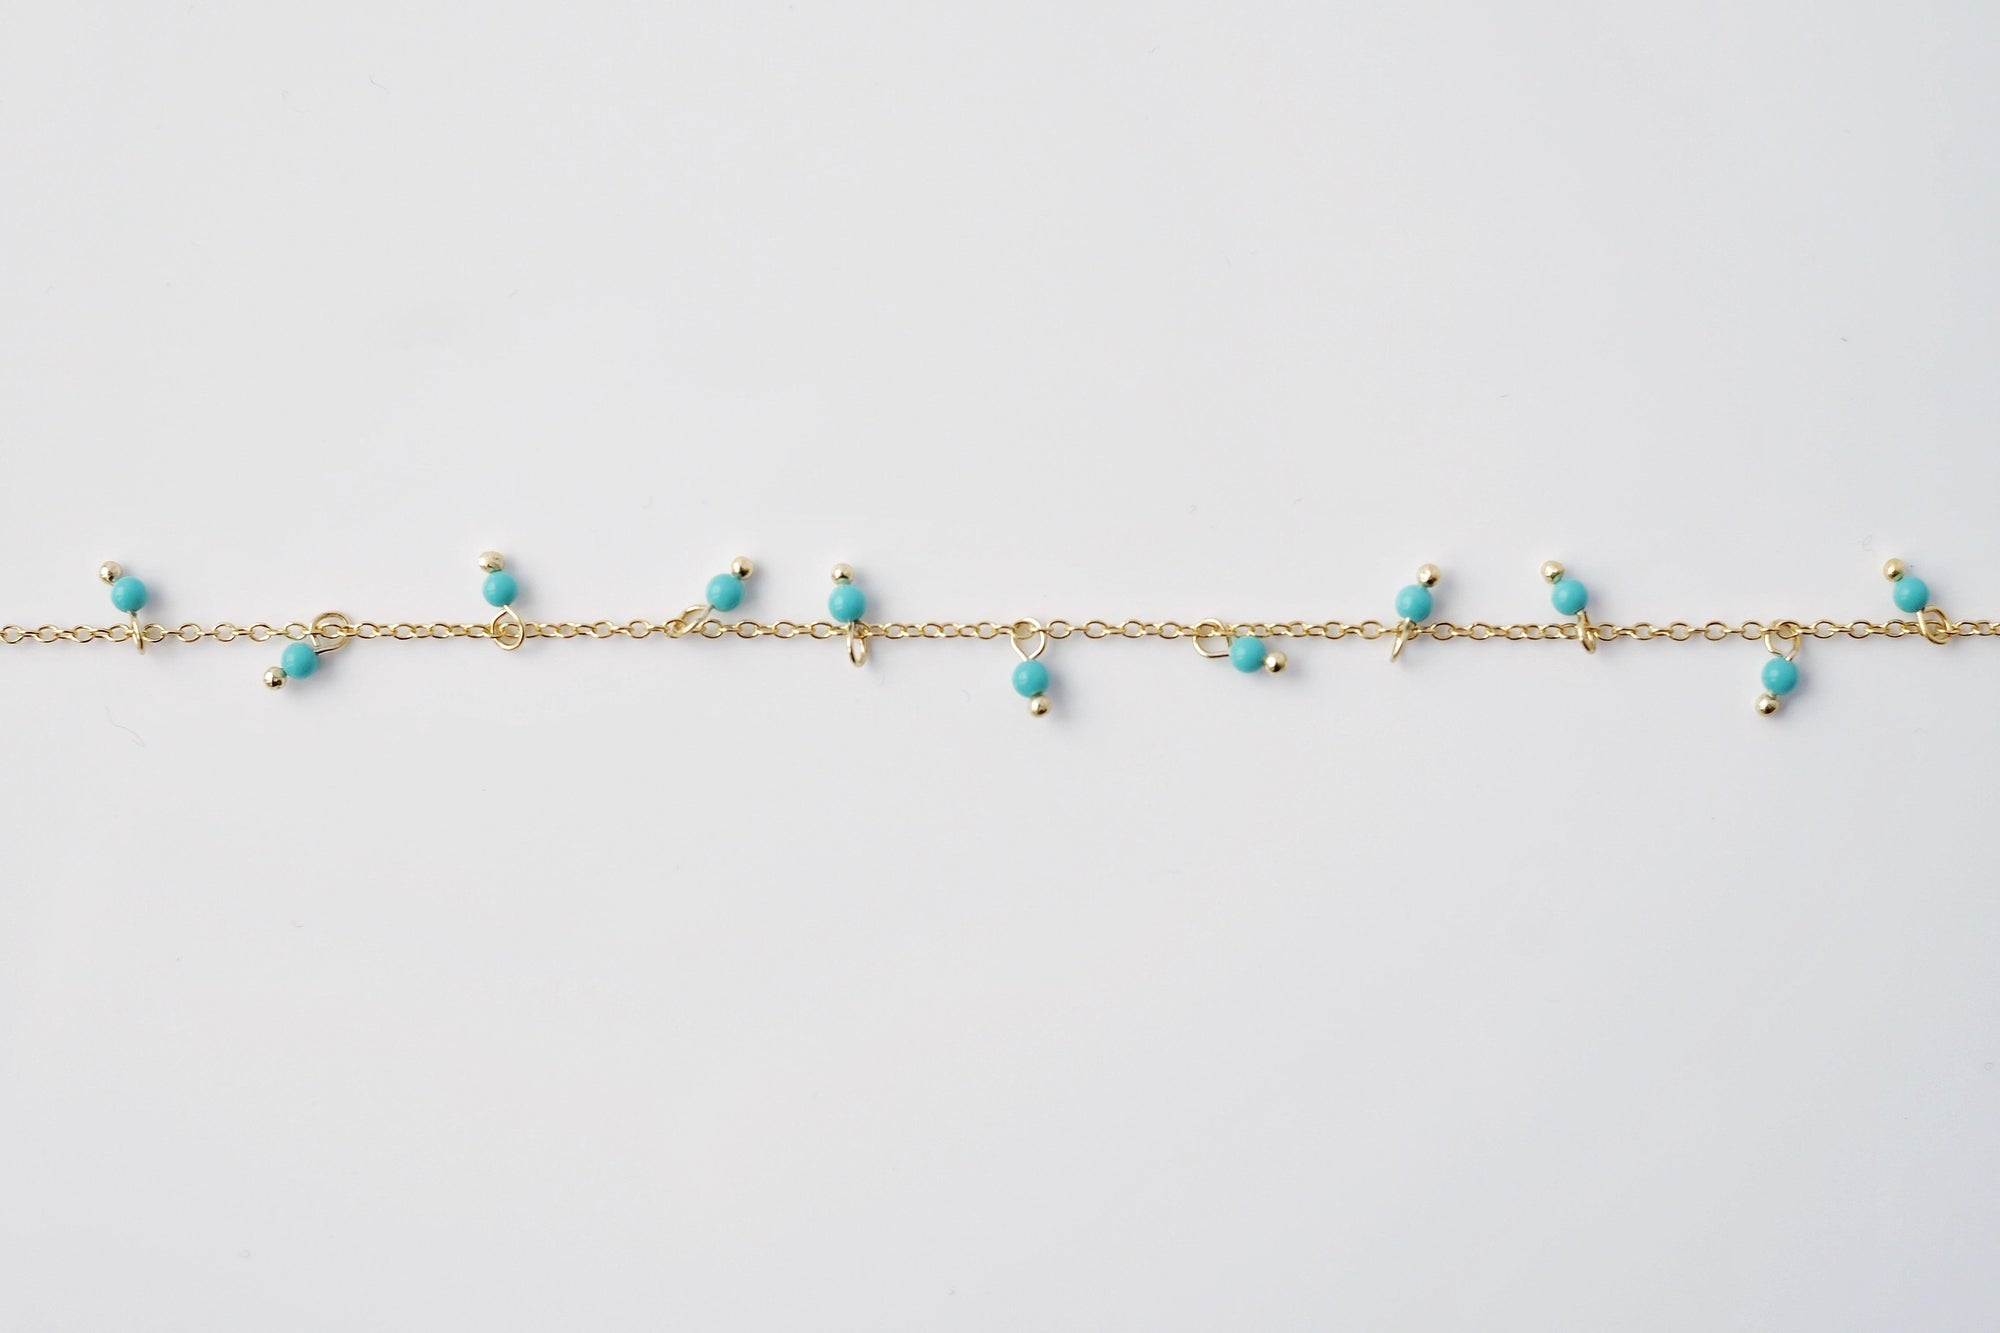 Gold + Aqua Beads Anklet